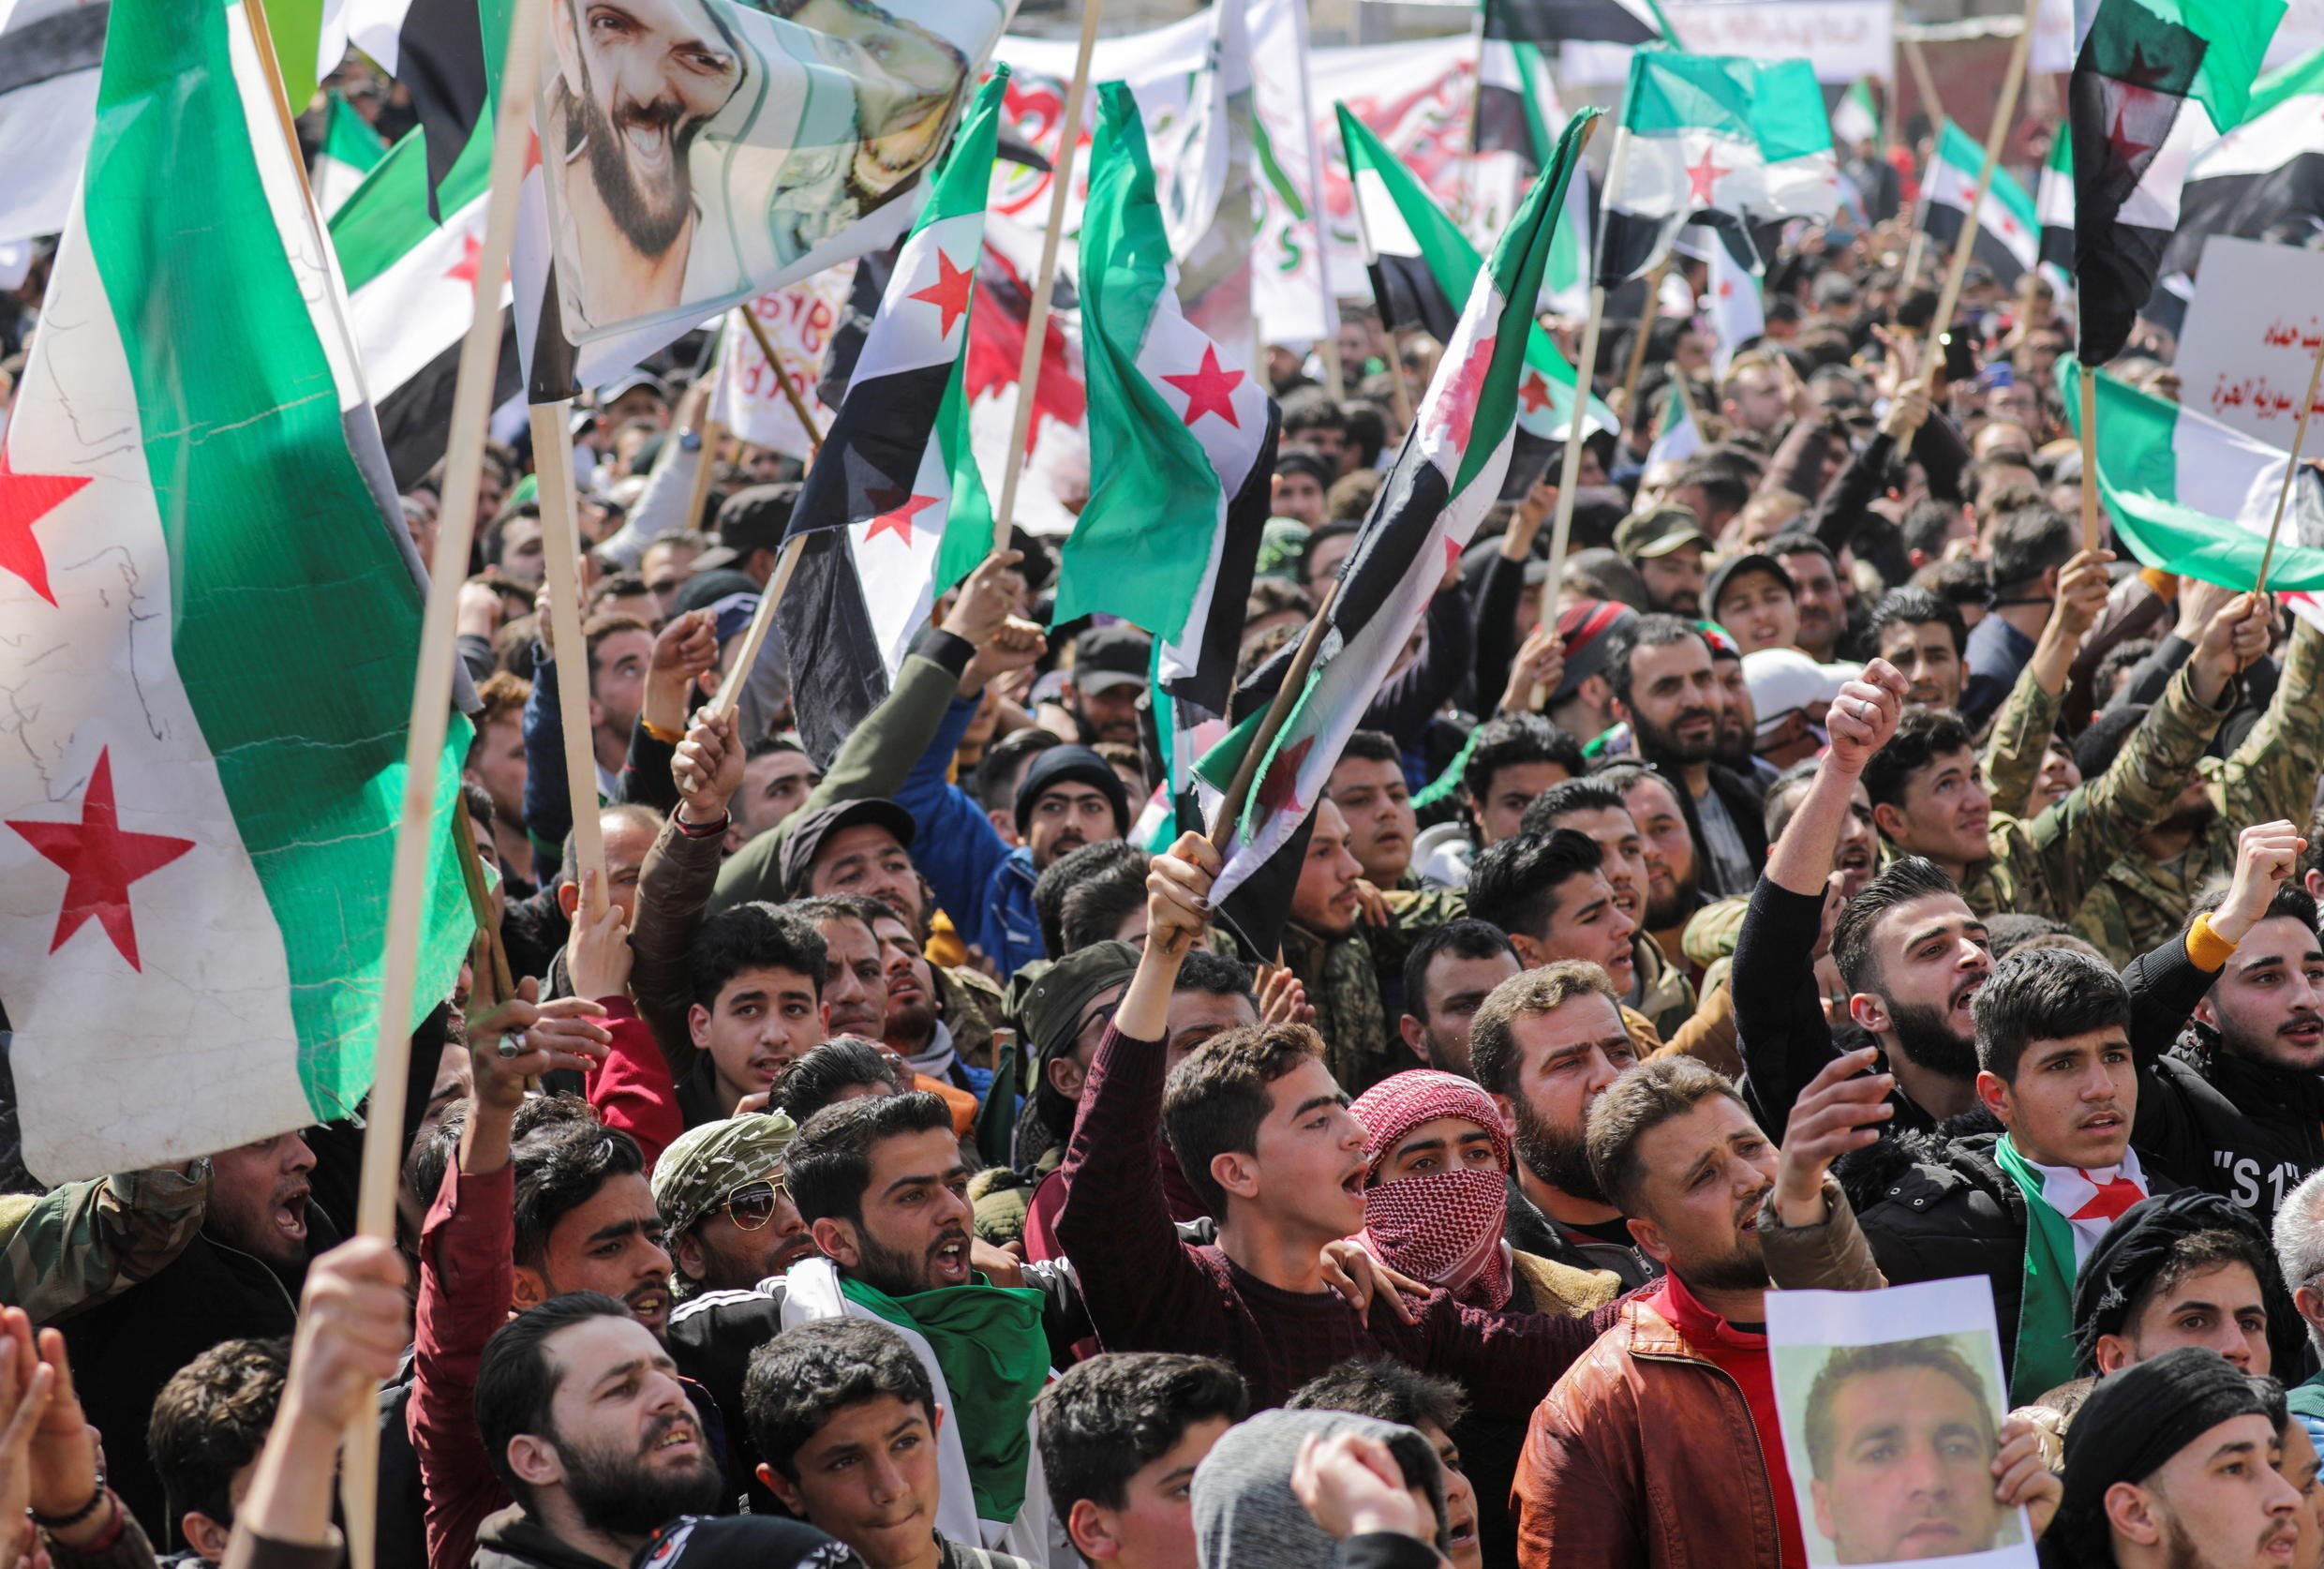 SYRIA-SECURITY-ANNIVERSARY-PROTESTS